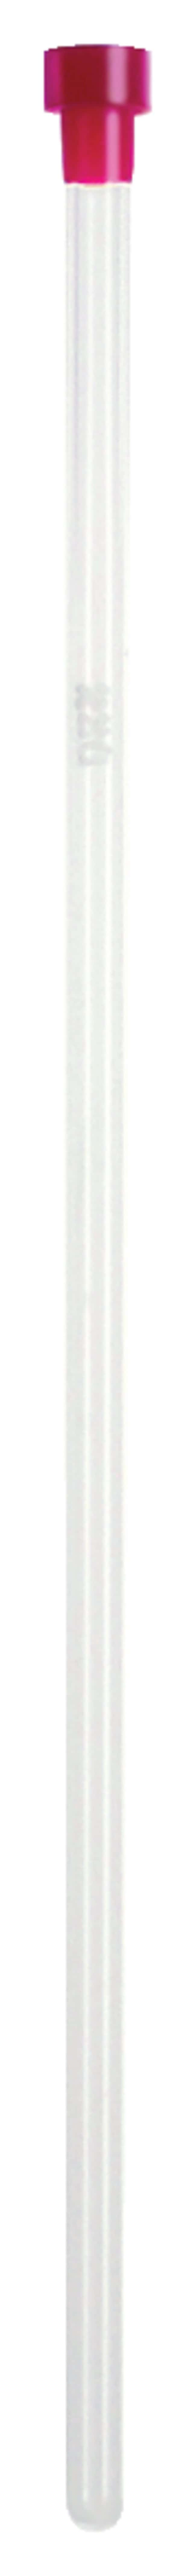 DWK Life SciencesKimble Kontes Brand 5mm Disposable Grade NMR Sample Tubes